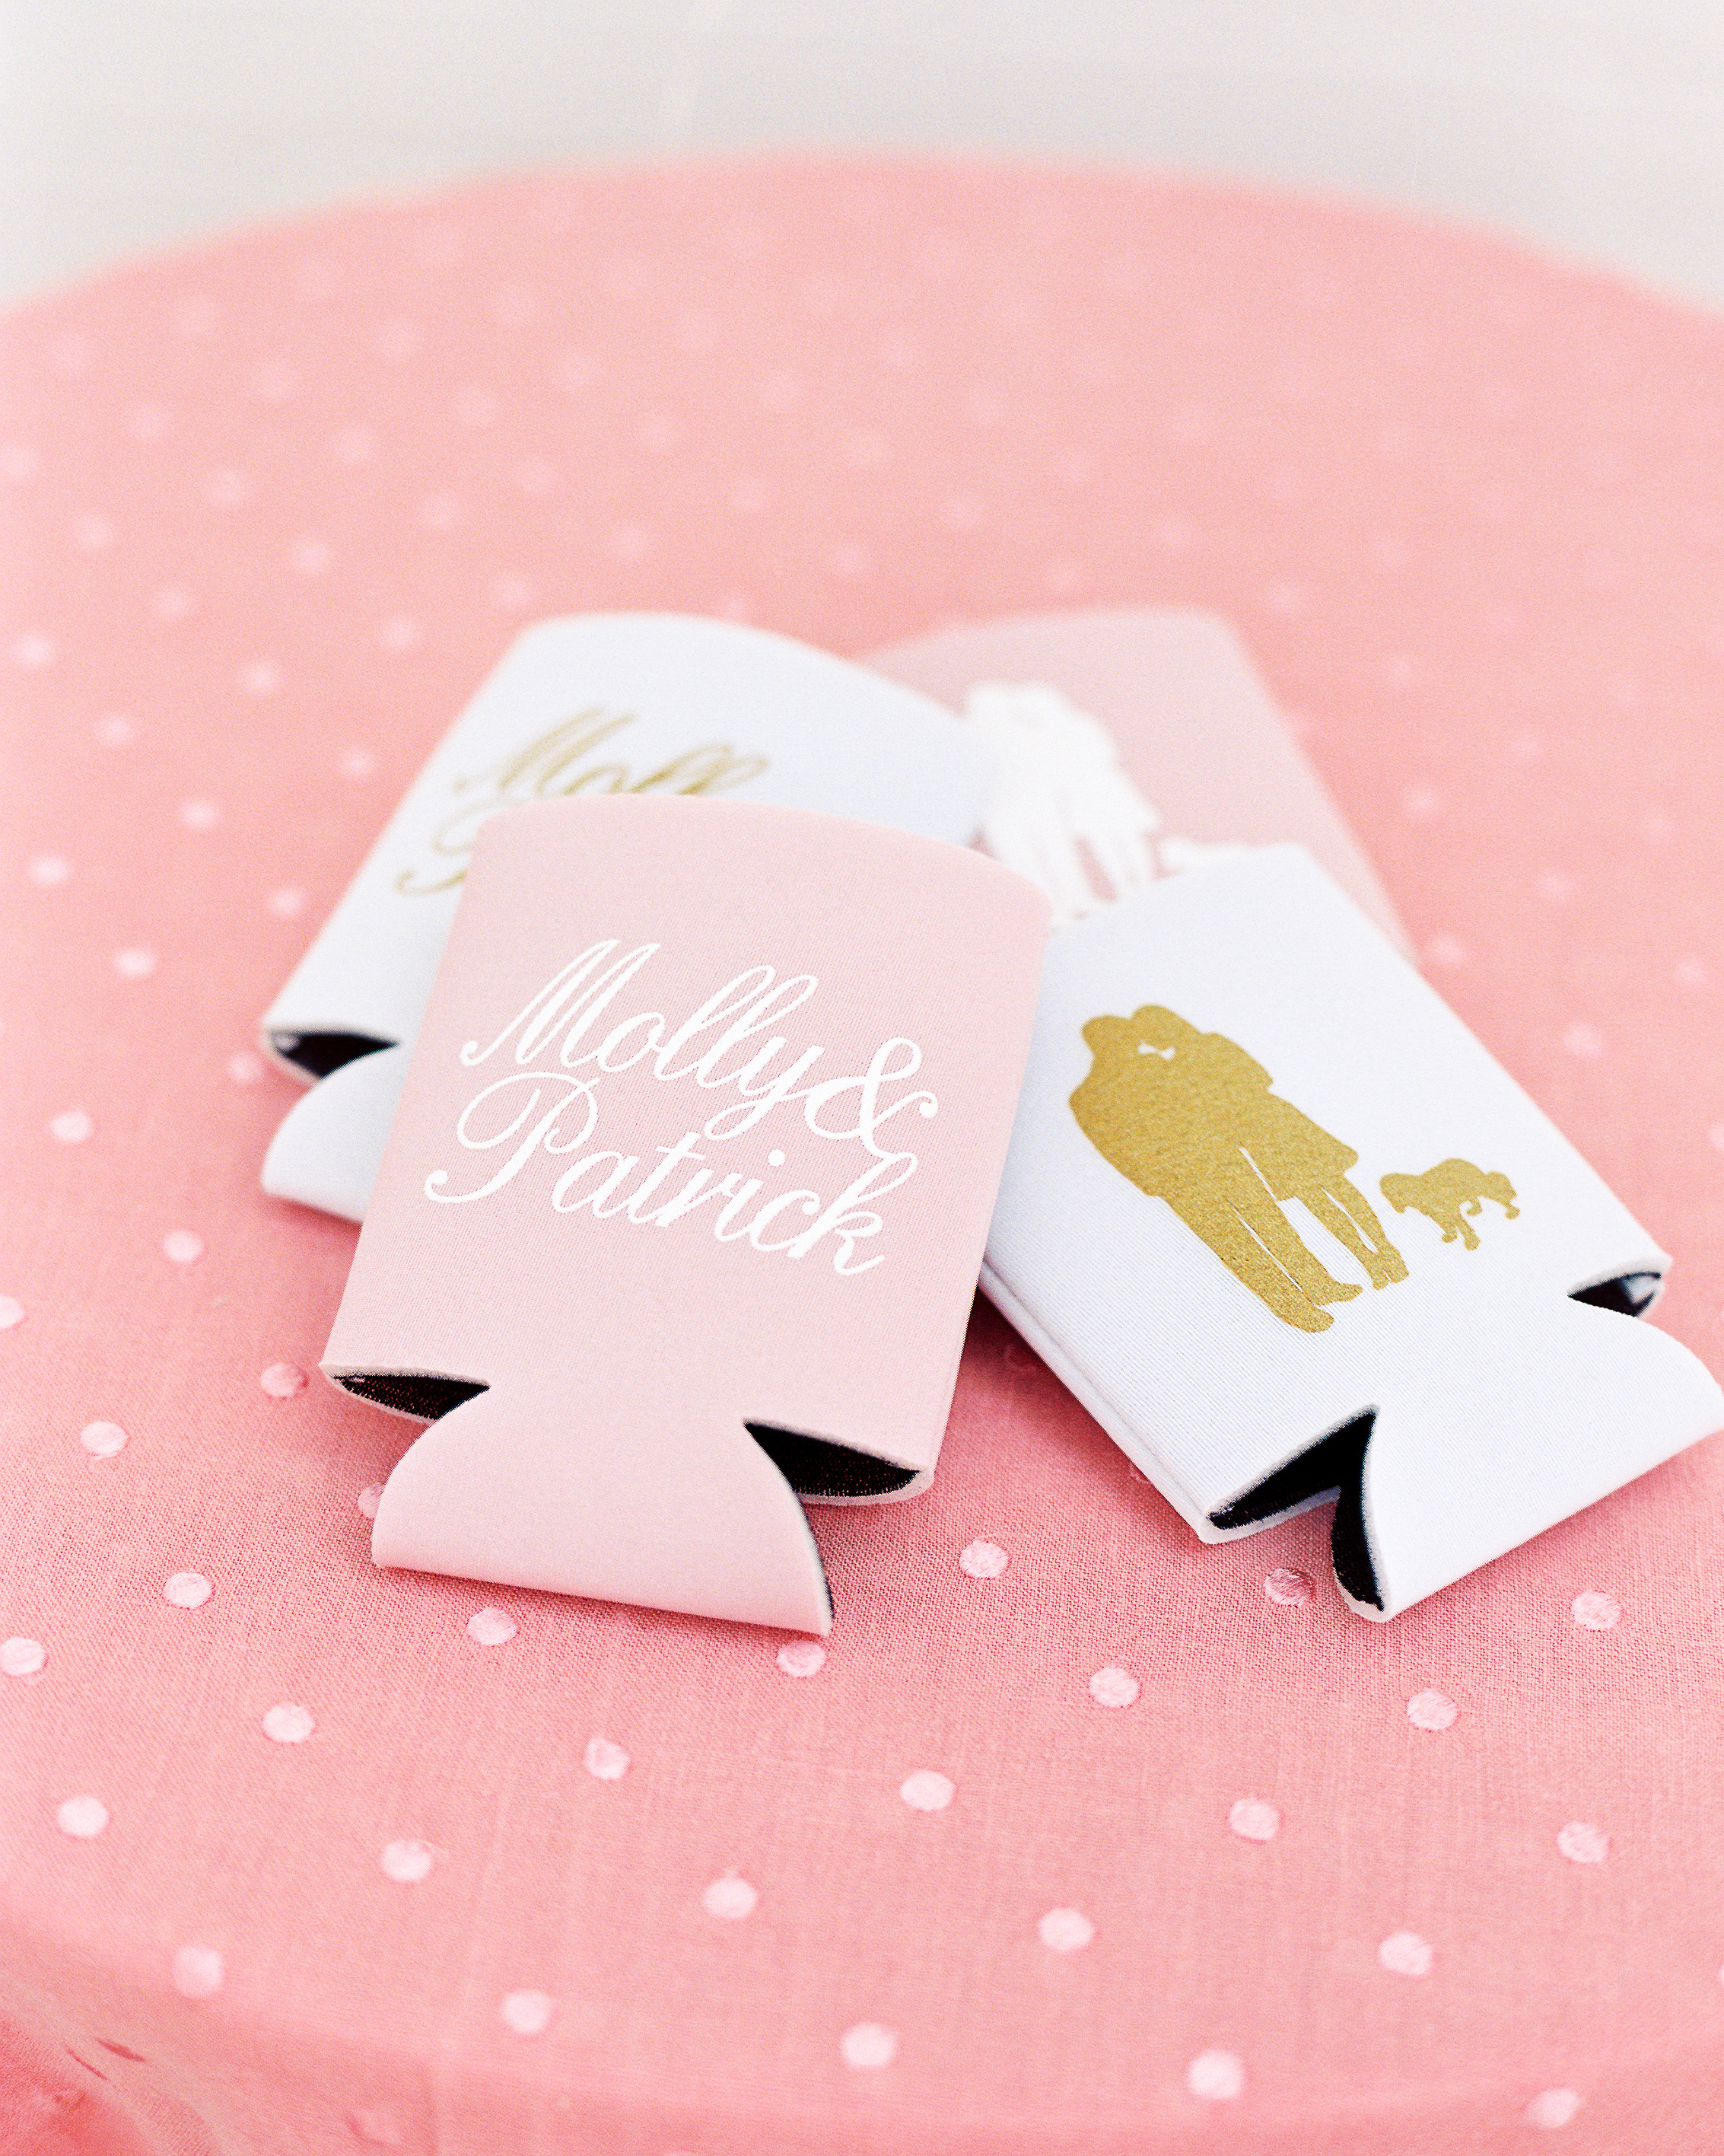 molly-patrick-wedding-coozies-3039-s111760-0115.jpg